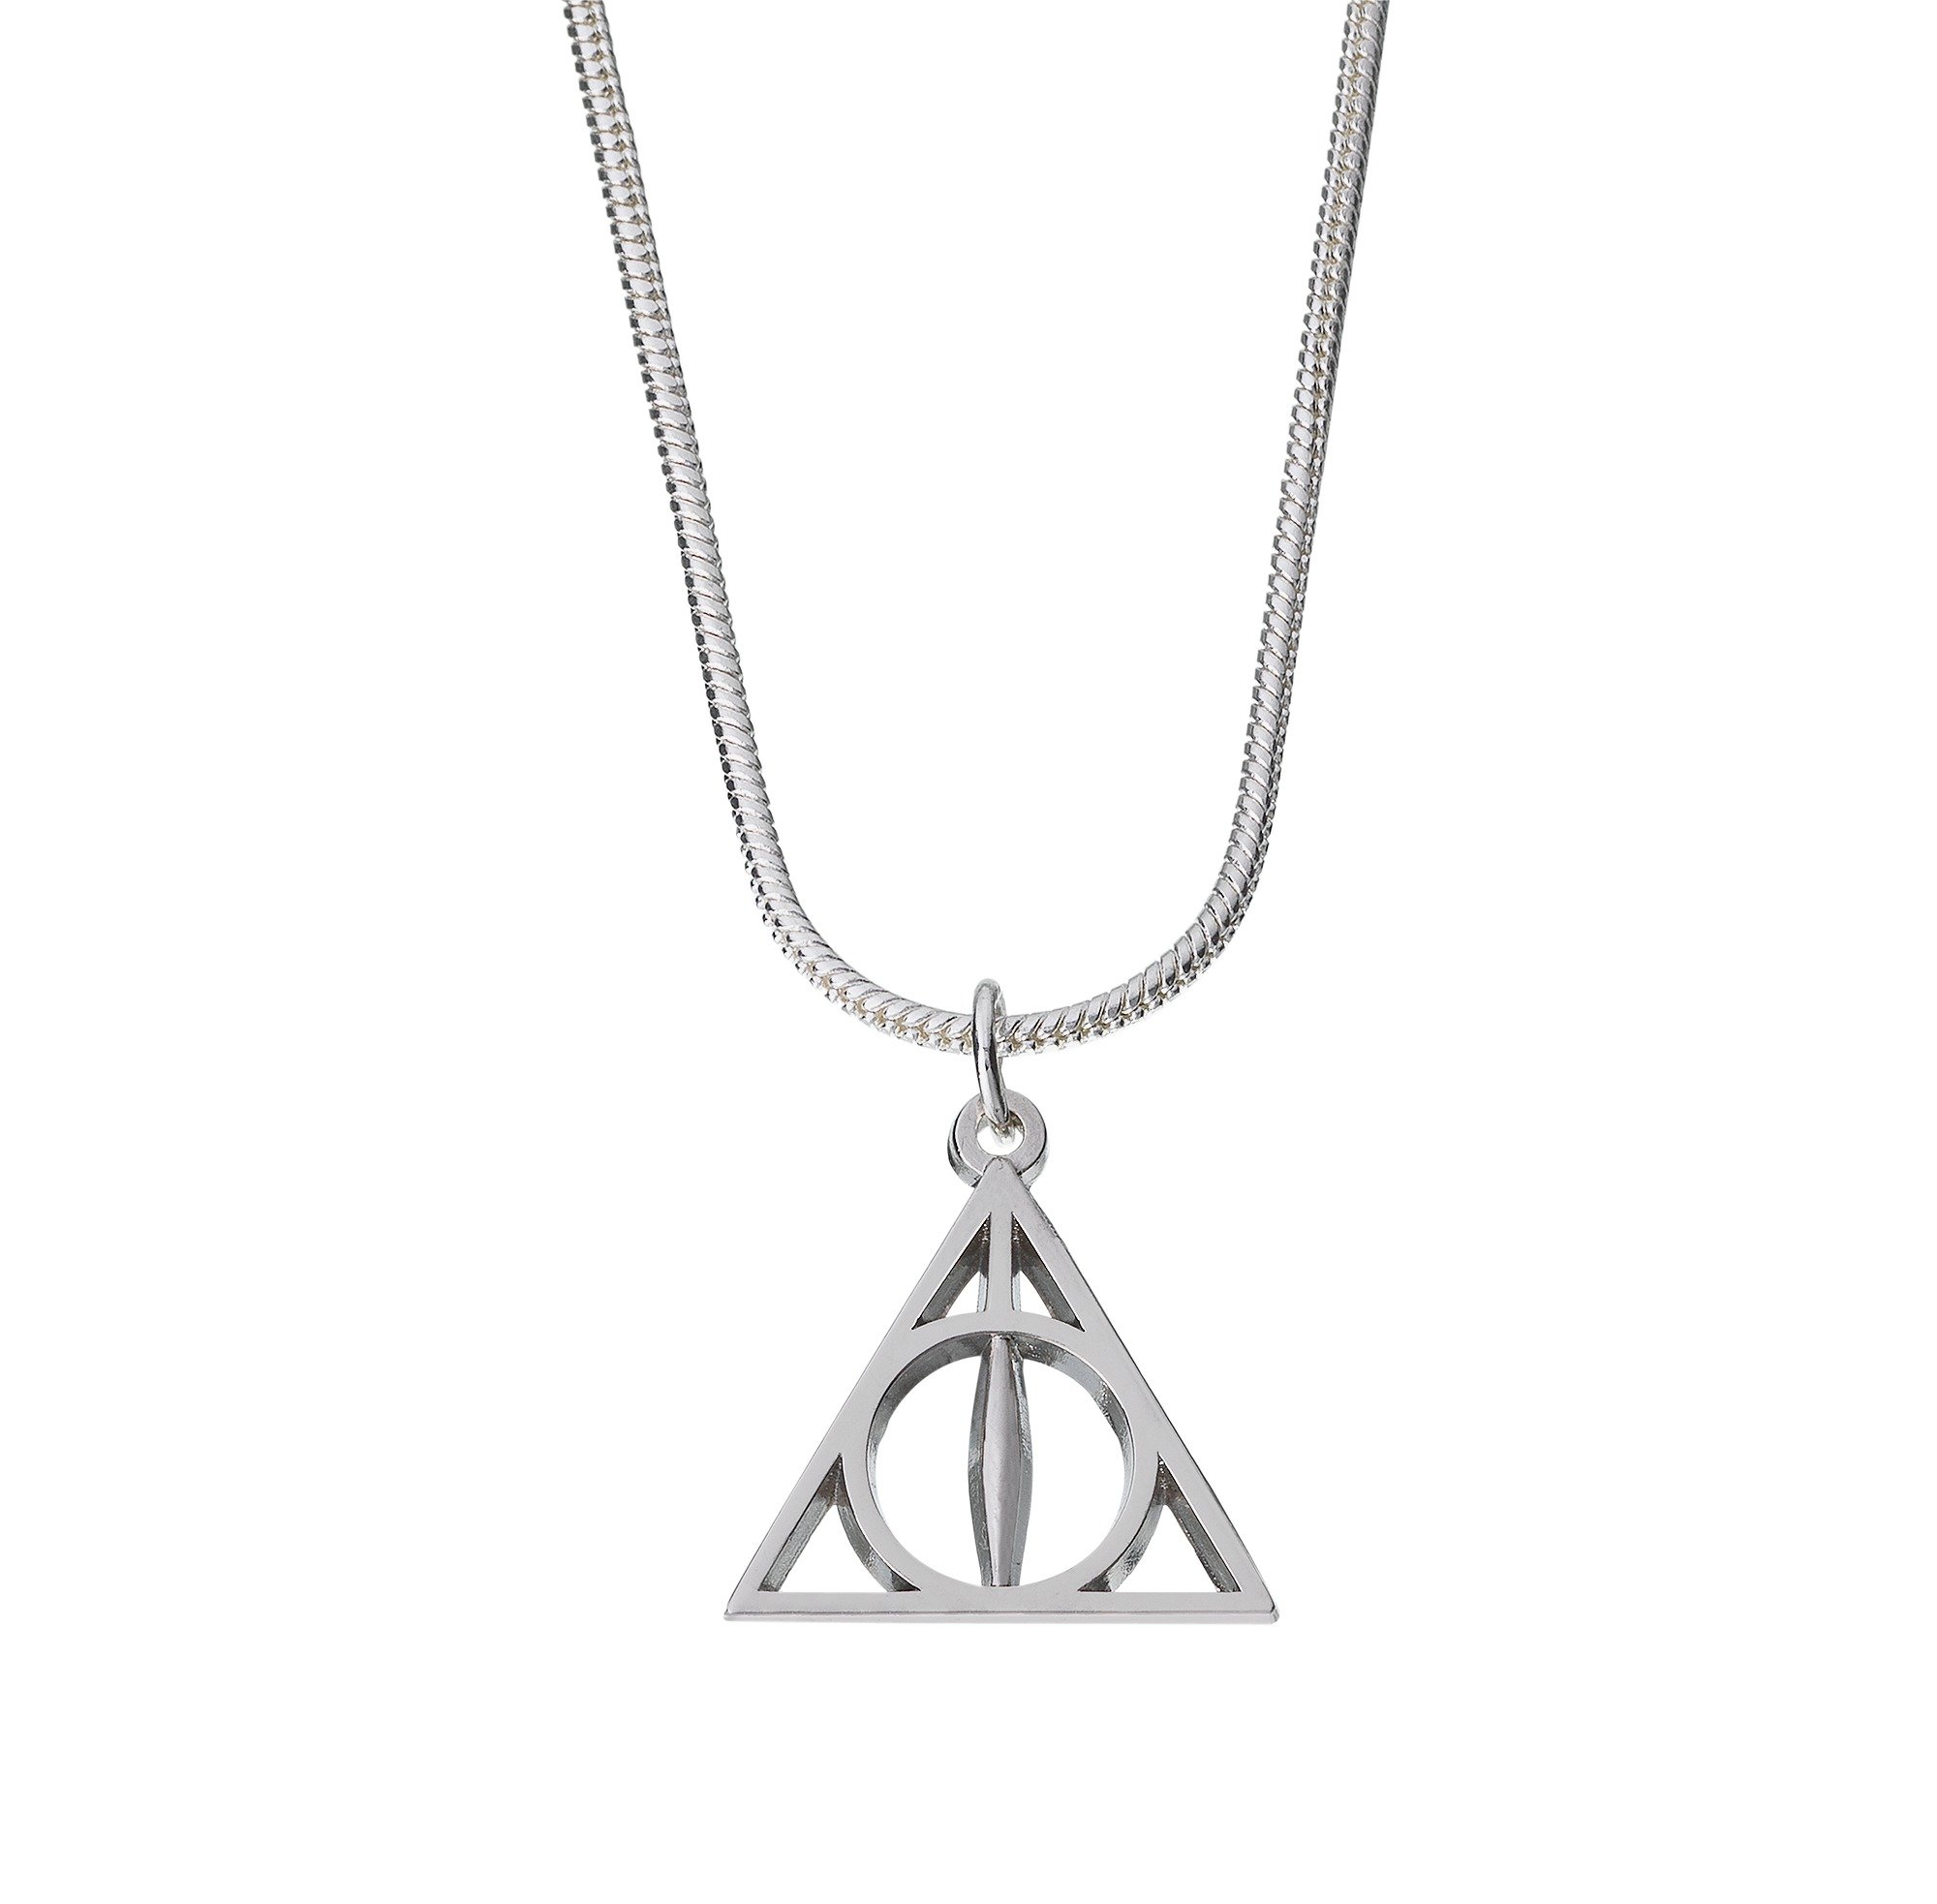 d33dfee5bf638 Harry Potter Pendants and Necklaces